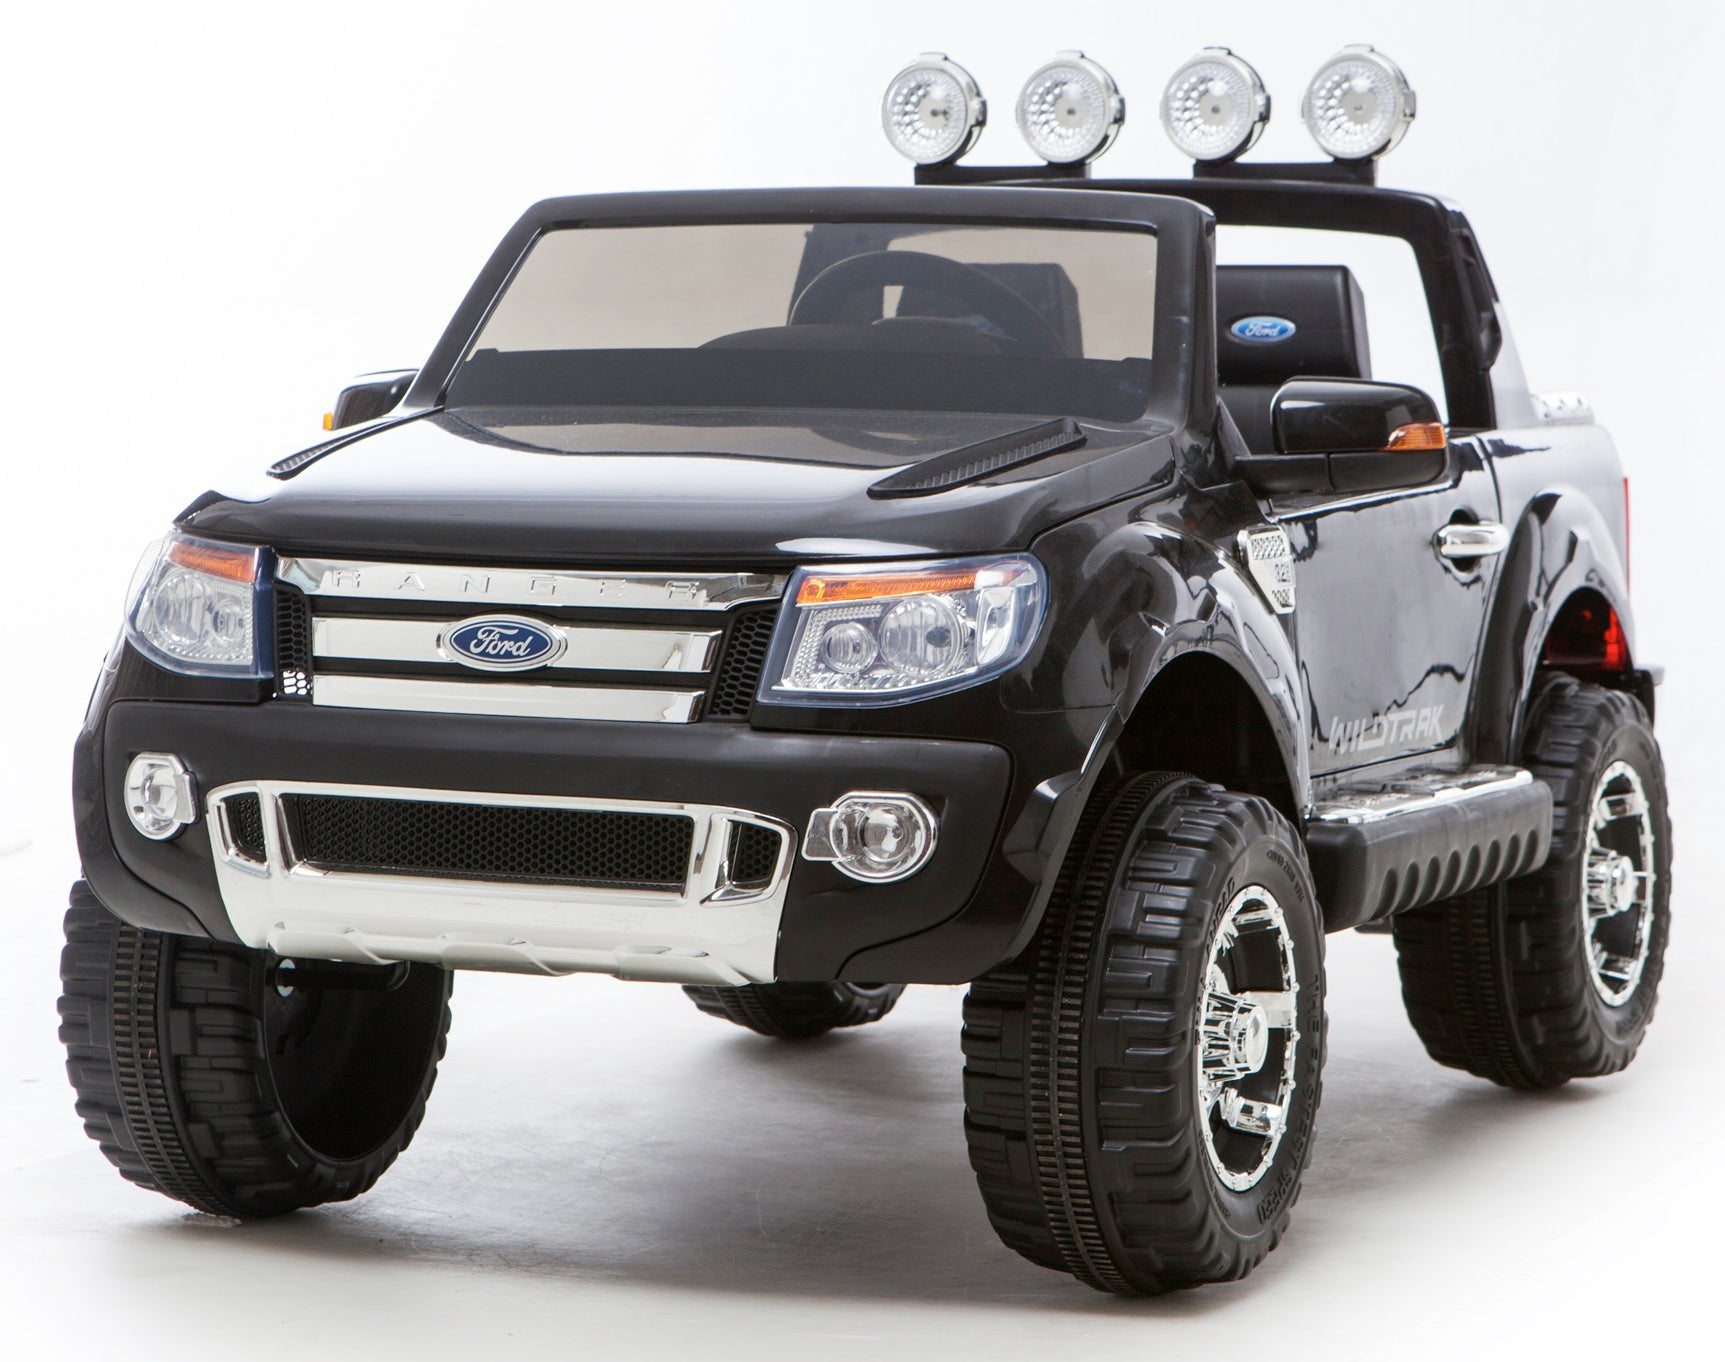 Black Ricco Licensed Ford Ranger 4x4 Kids Electric Ride On